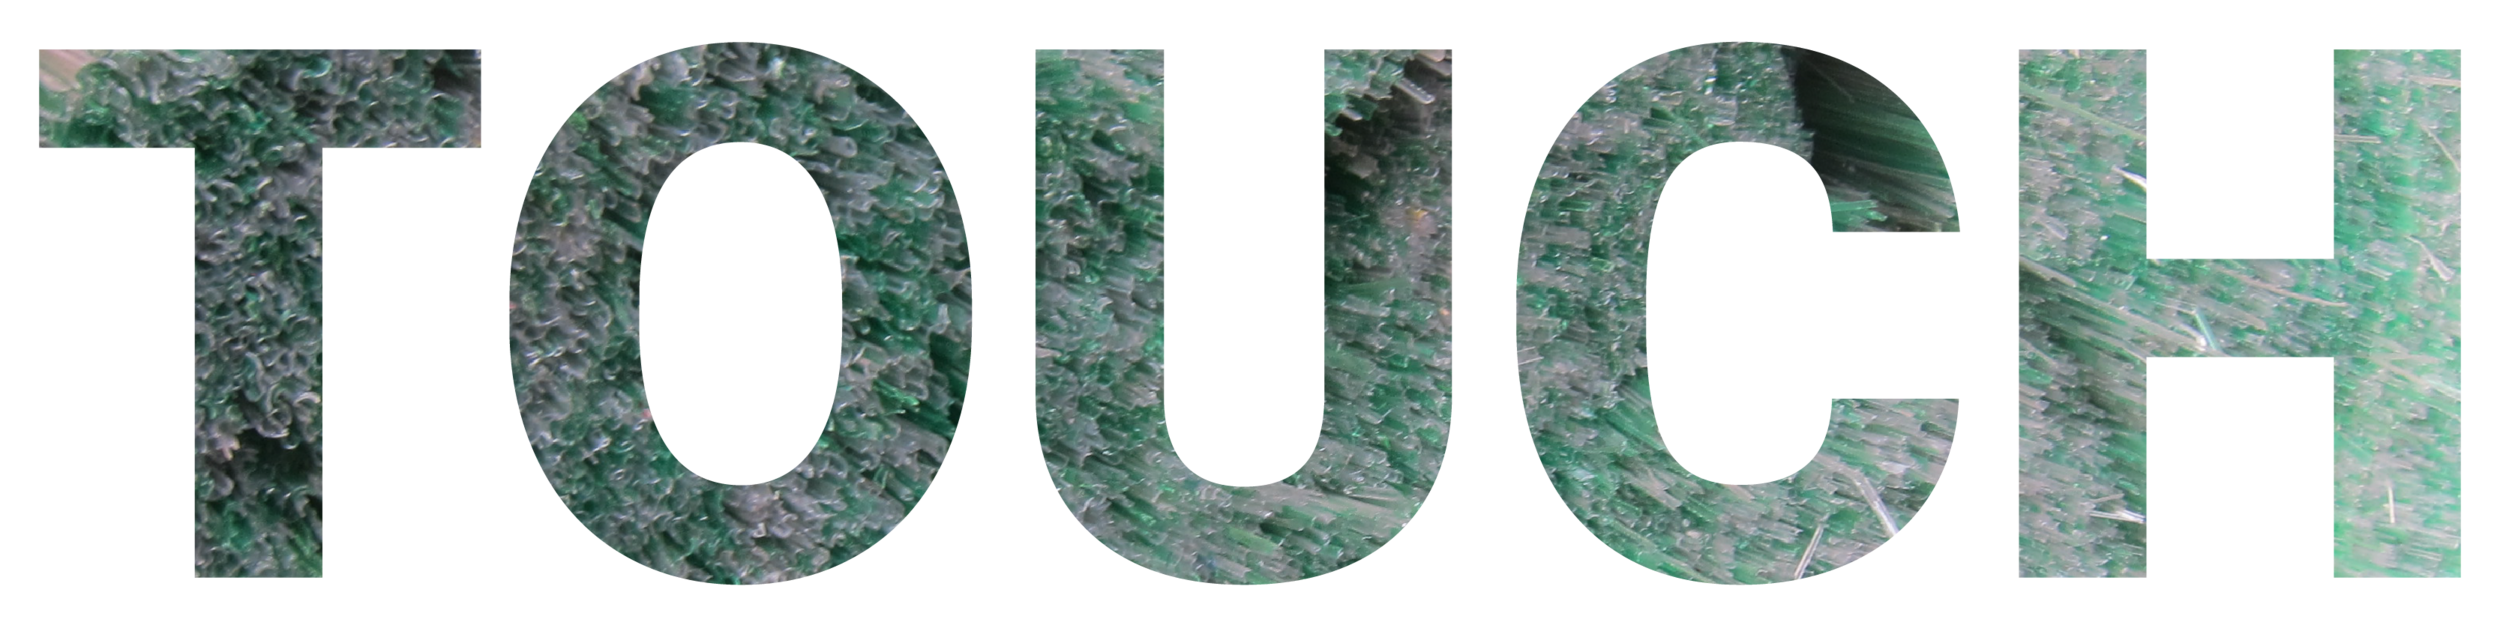 touch-logo-photo-01.png